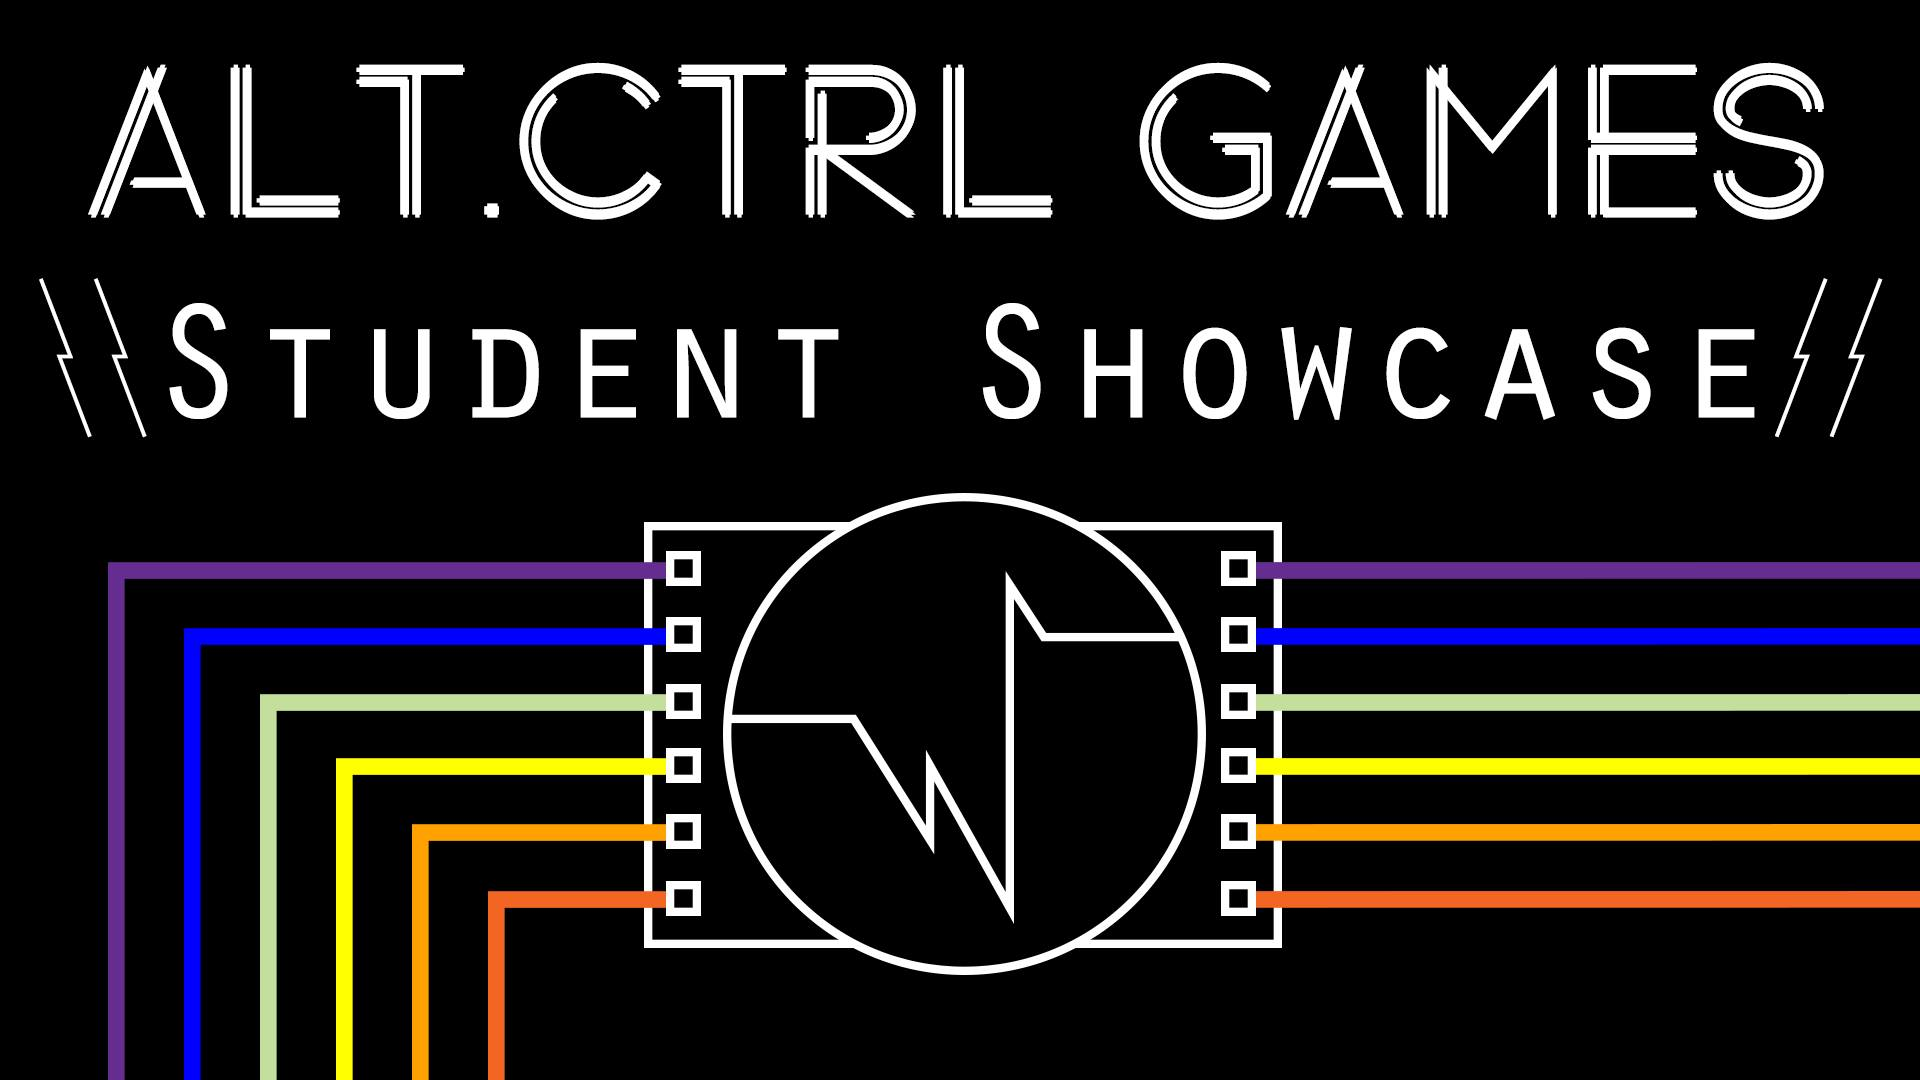 Alt.Ctrl Games Student Showcase Free  https://withfriends.co/event/1517966